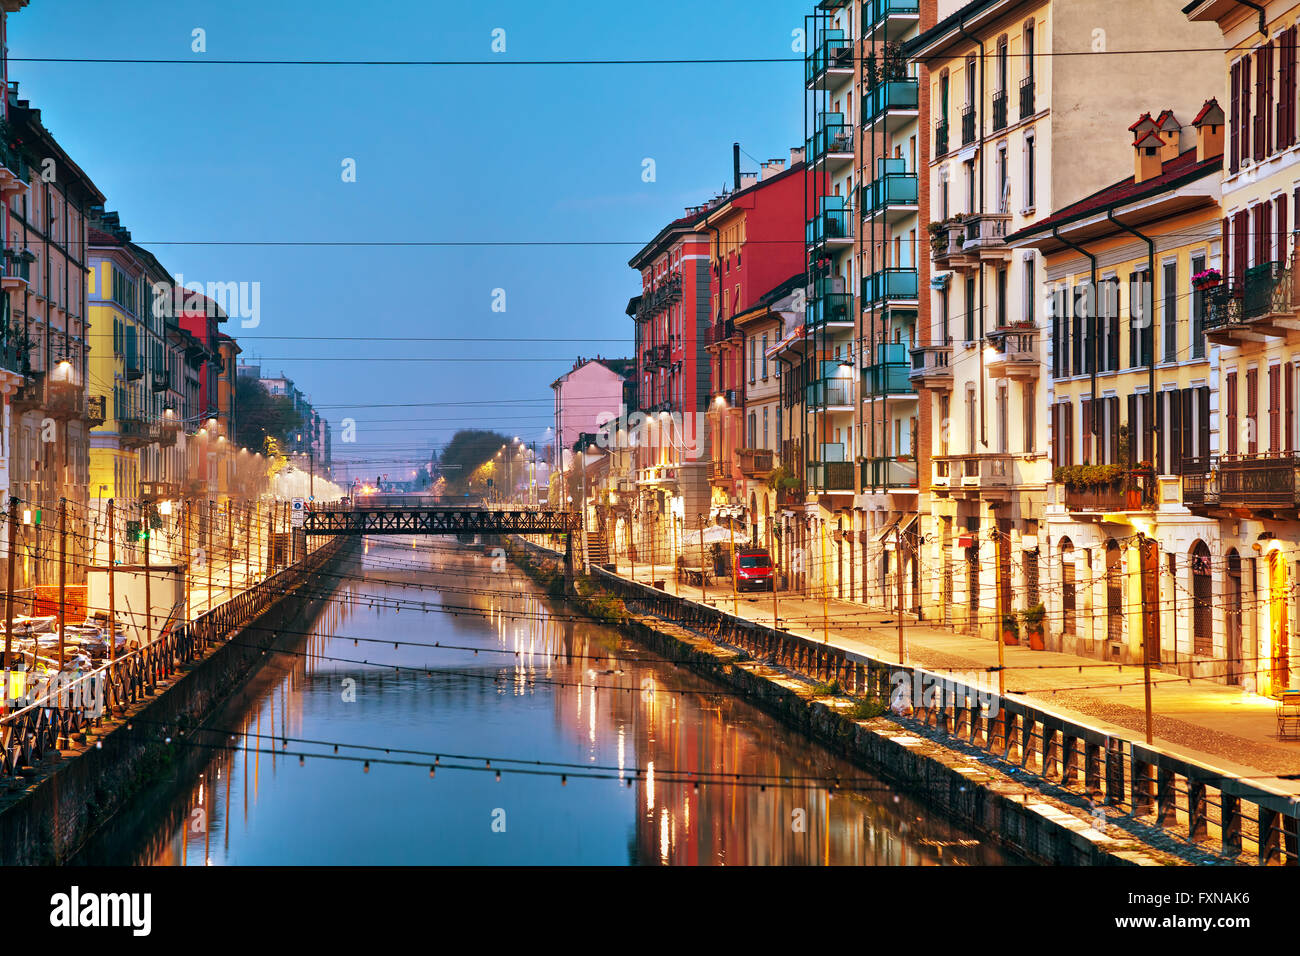 The Naviglio Grande canal in Milan, Italy at sunrise - Stock Image